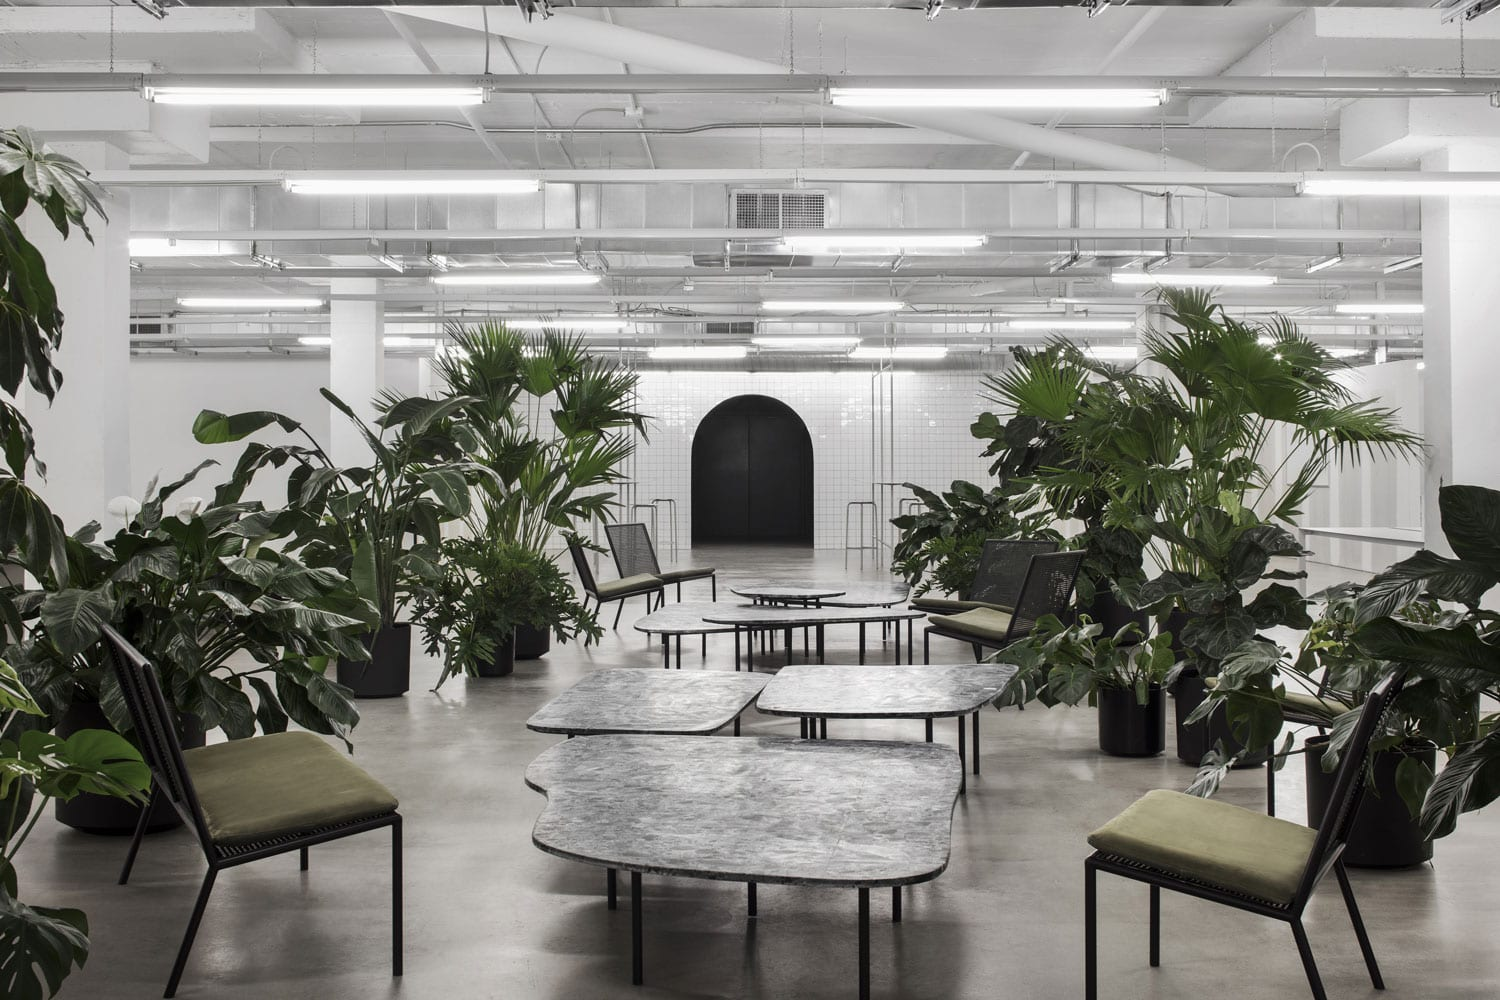 SSENSE HQ in Montreal Canada by Atelier Barda Yellowtrace